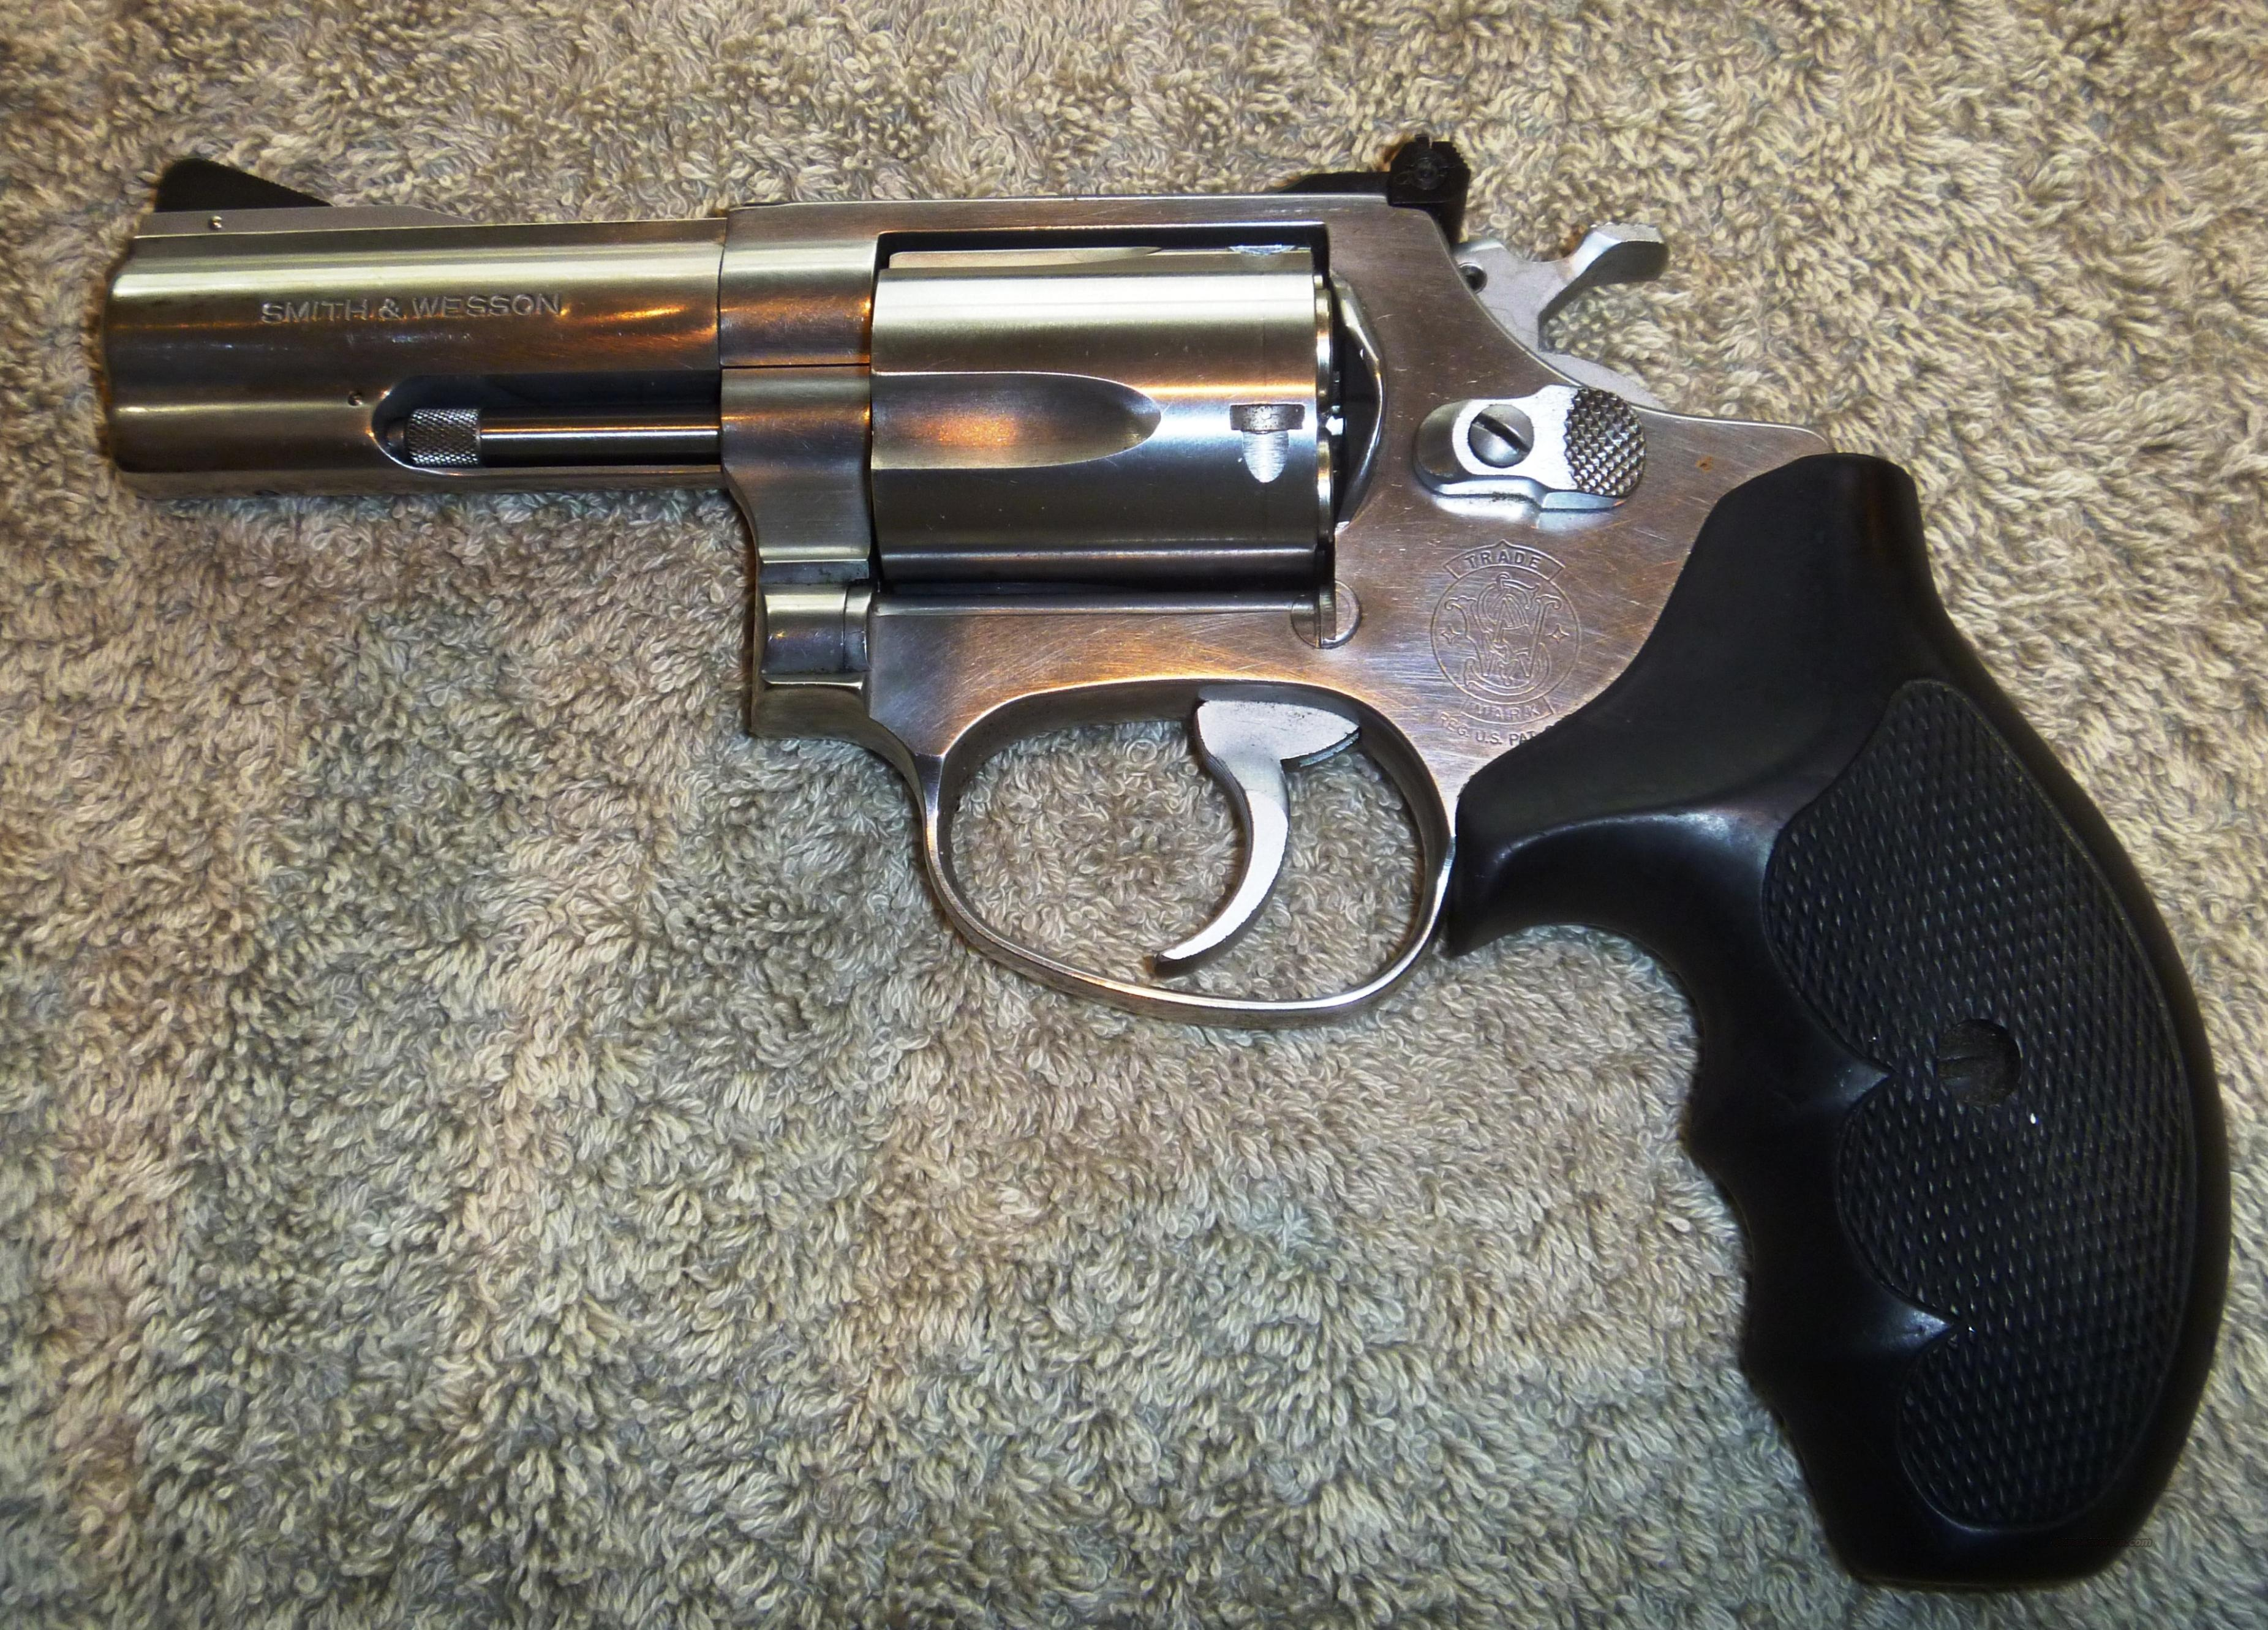 Smith and Wesson Model 60-4 .38 Special  Guns > Pistols > Smith & Wesson Revolvers > Full Frame Revolver